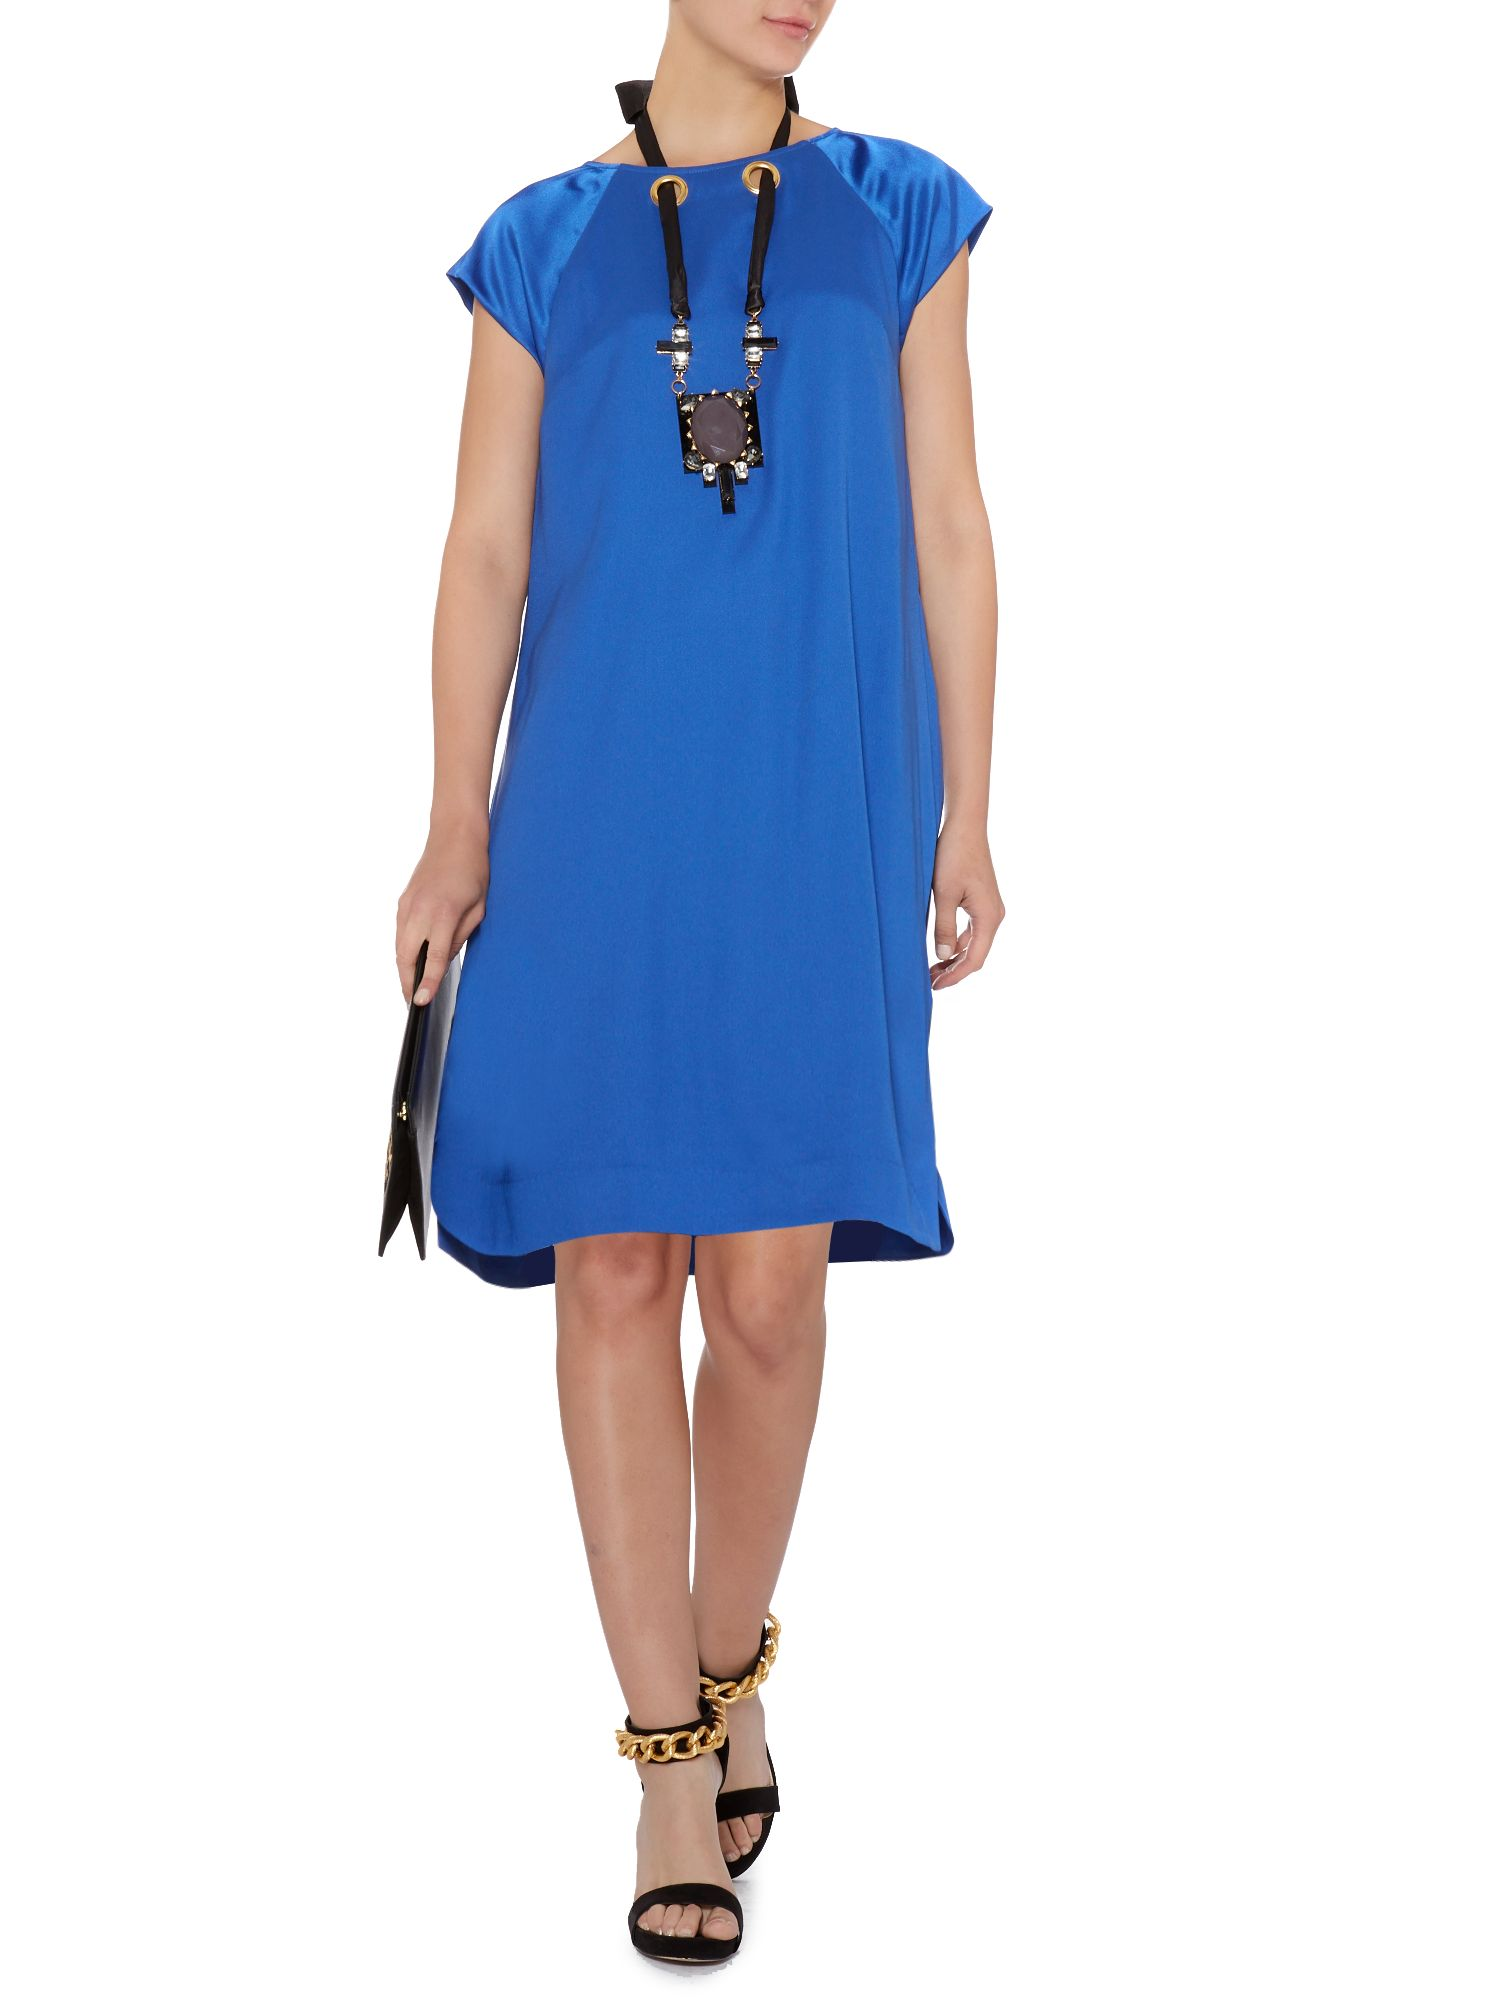 Necklace chain dress